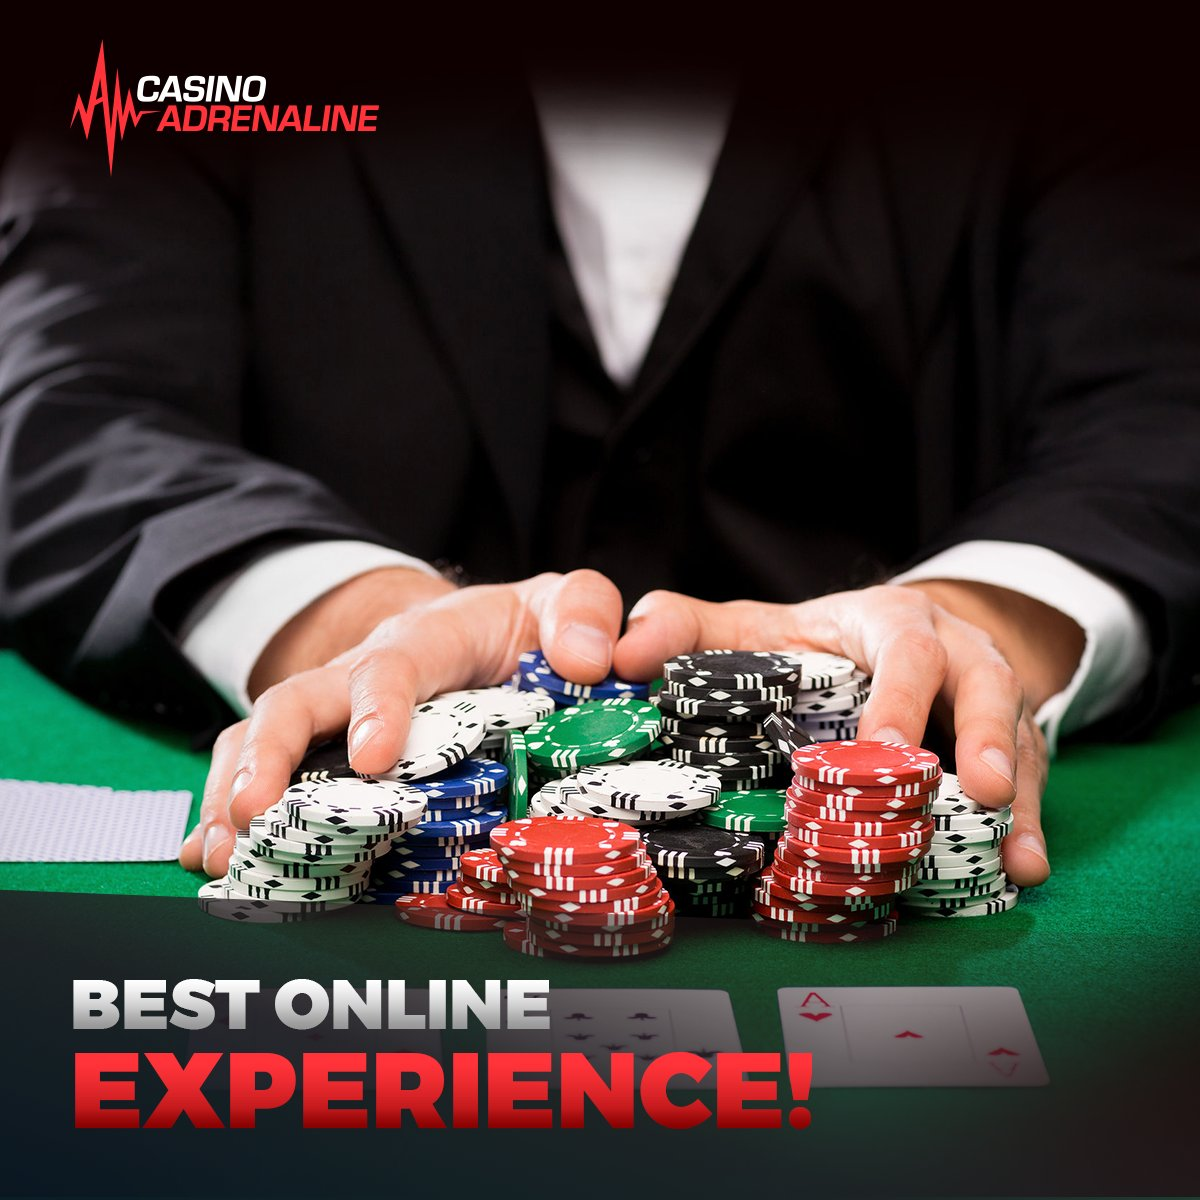 test Twitter Media - If you're more into the real feel, check out our Live Casino Hold'em game! 😎 #CasinoAdrenaline #CasinoHoldem https://t.co/bcWywoztEv